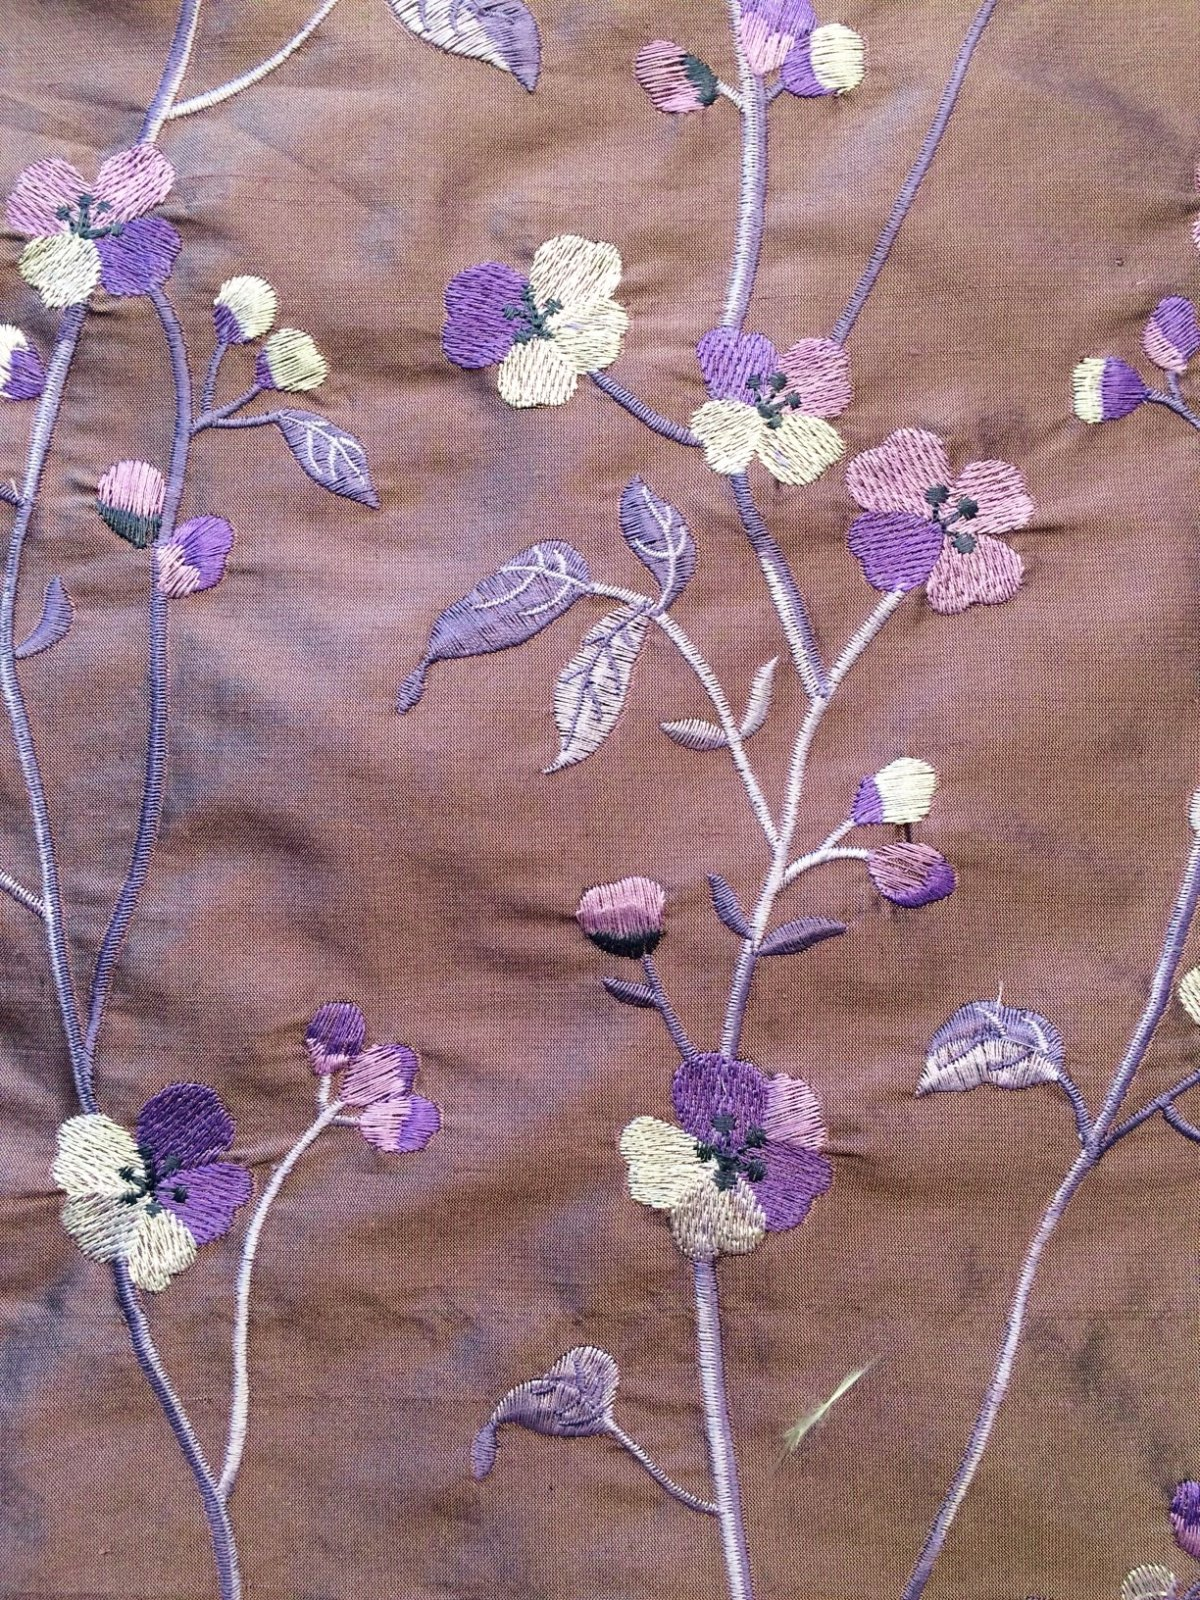 Purple with Embroidered Flowers